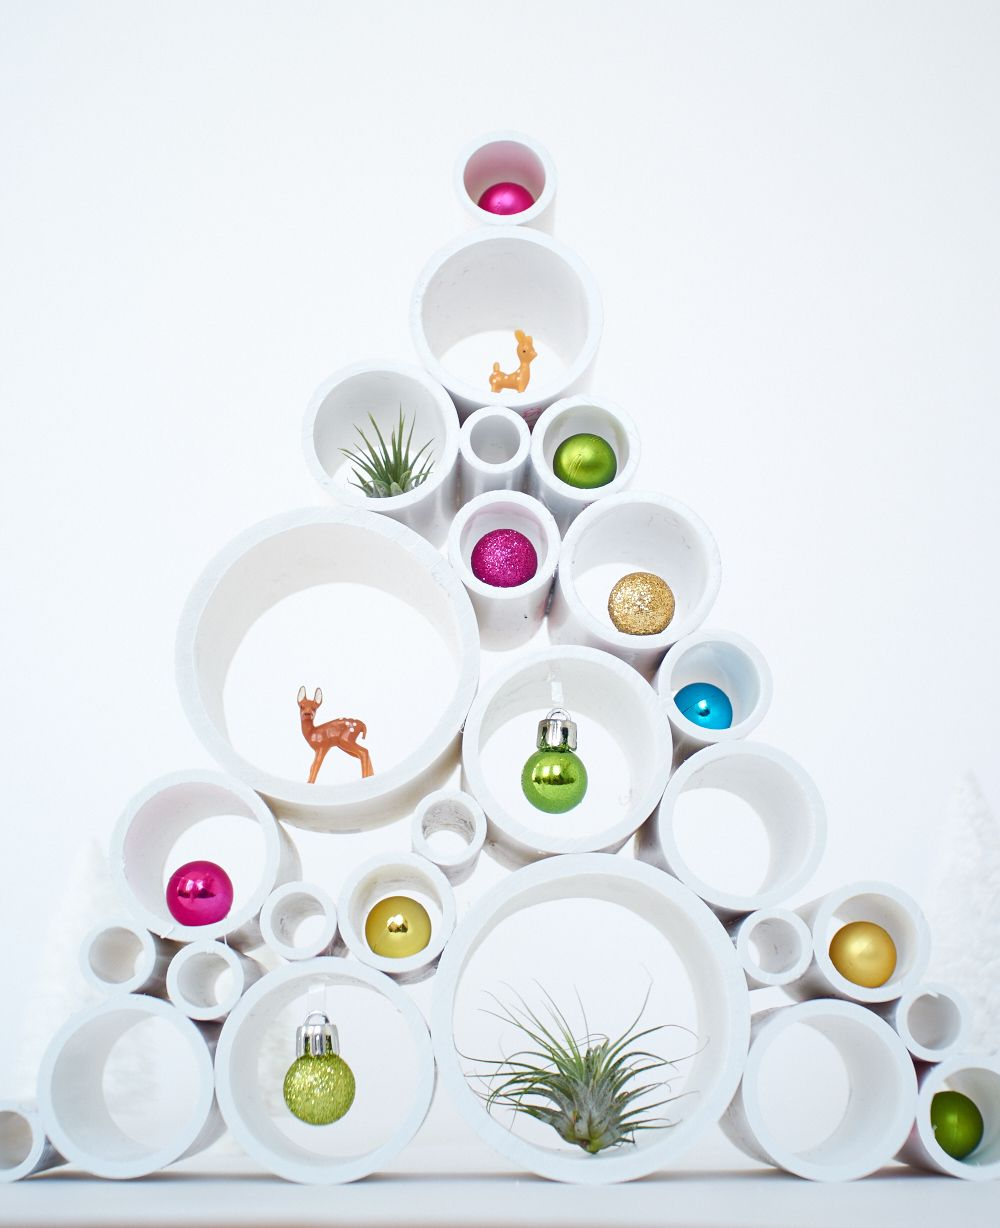 How To: Make a PVC Pipe Small-Scale Christmas Tree   Pvc ...